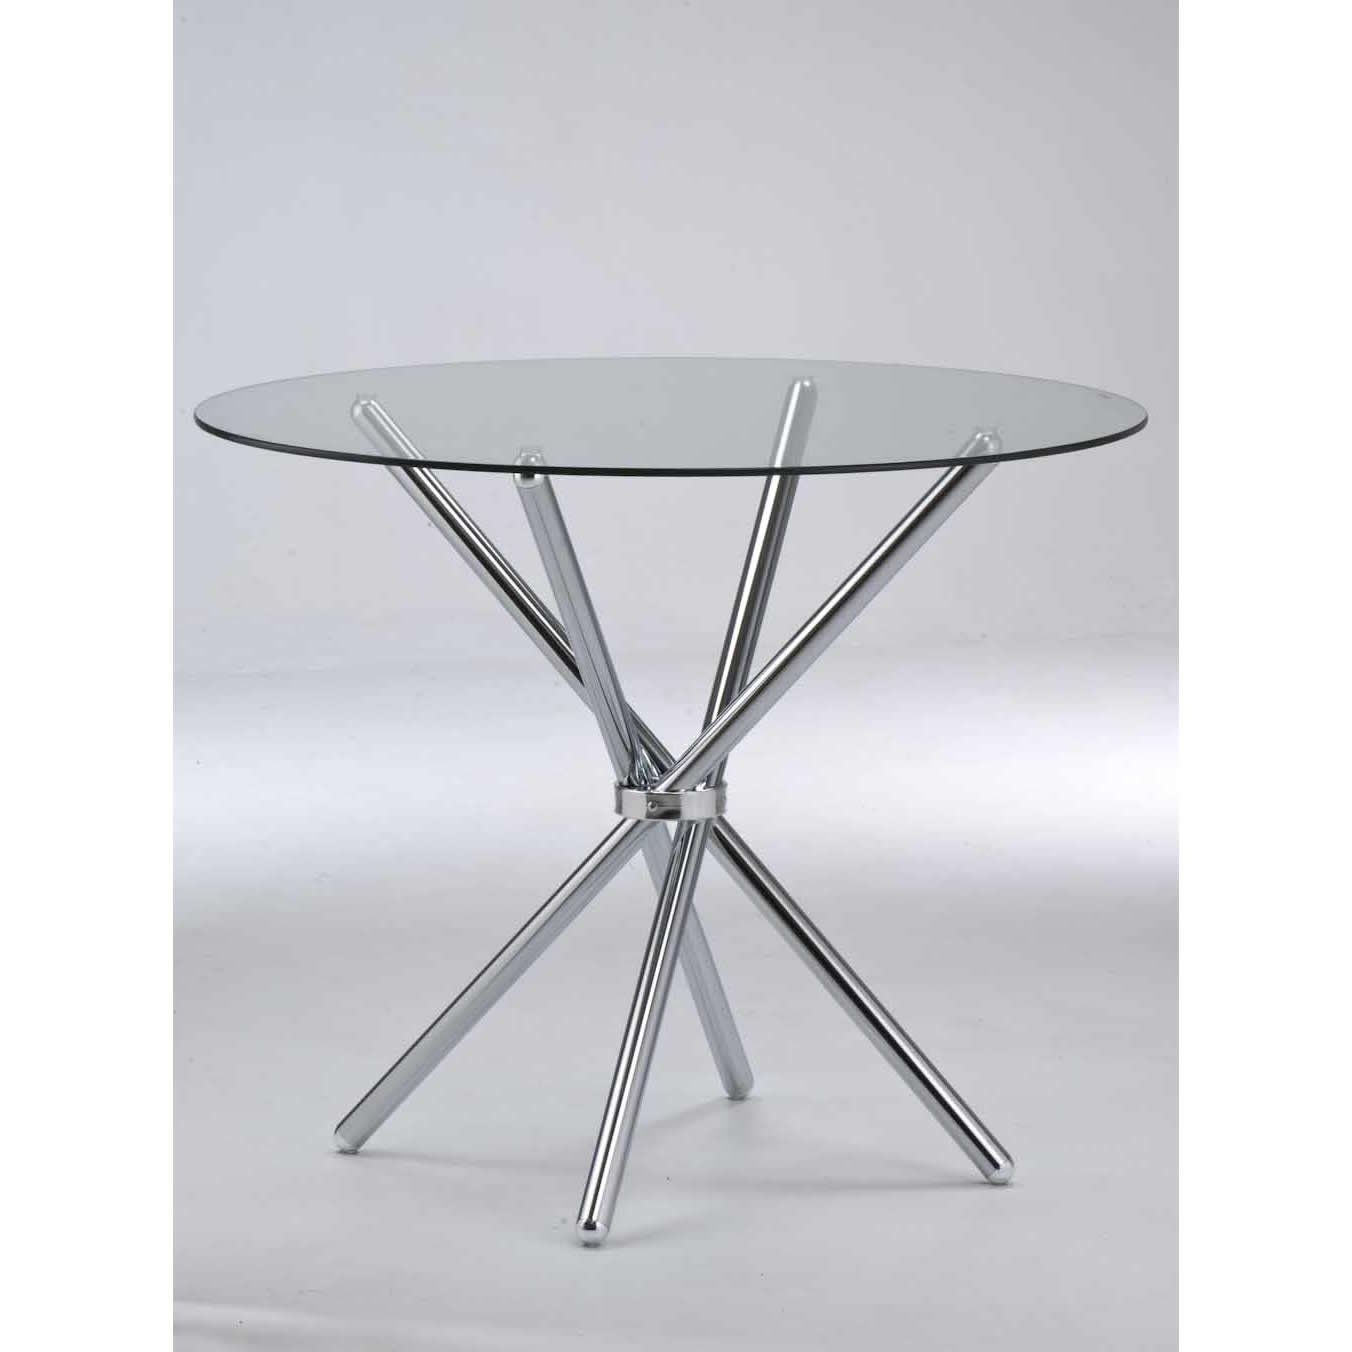 Most Current Verona Round Dining Table Clear Tempered Glass/chrome Legs Intended For Chrome Dining Tables With Tempered Glass (View 2 of 25)